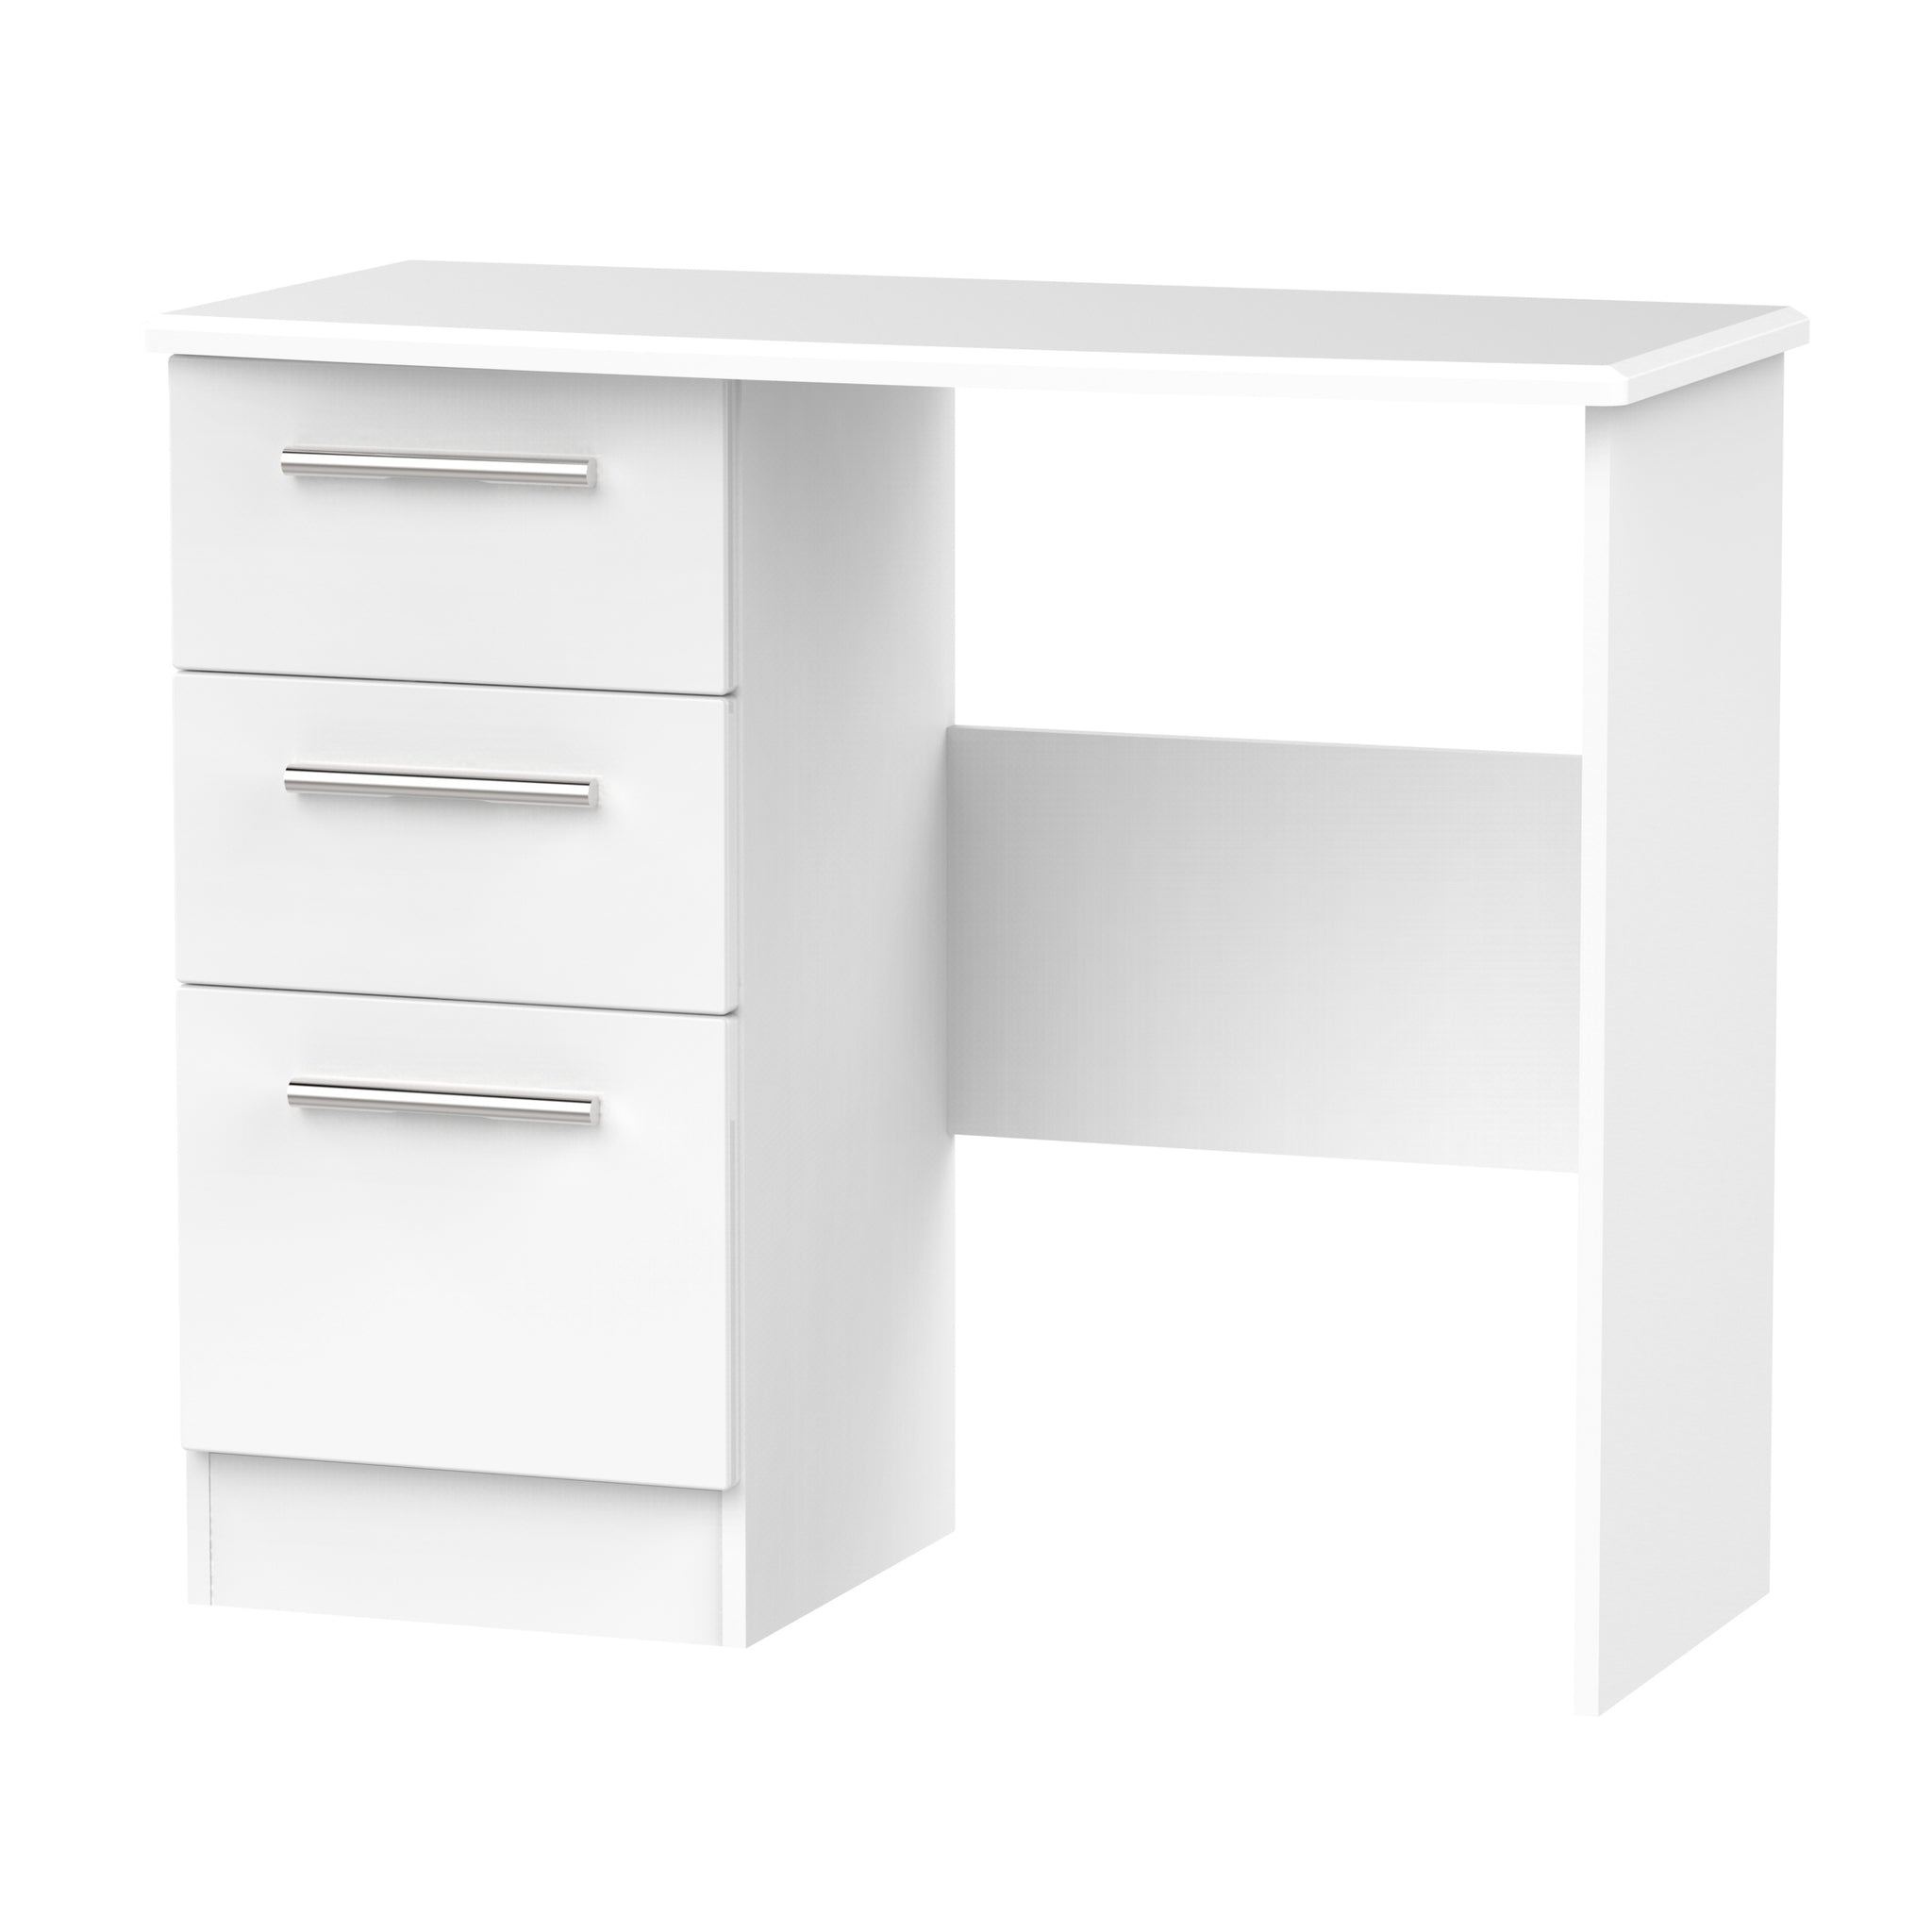 Kensington Dressing Table - Vanity with Drawers